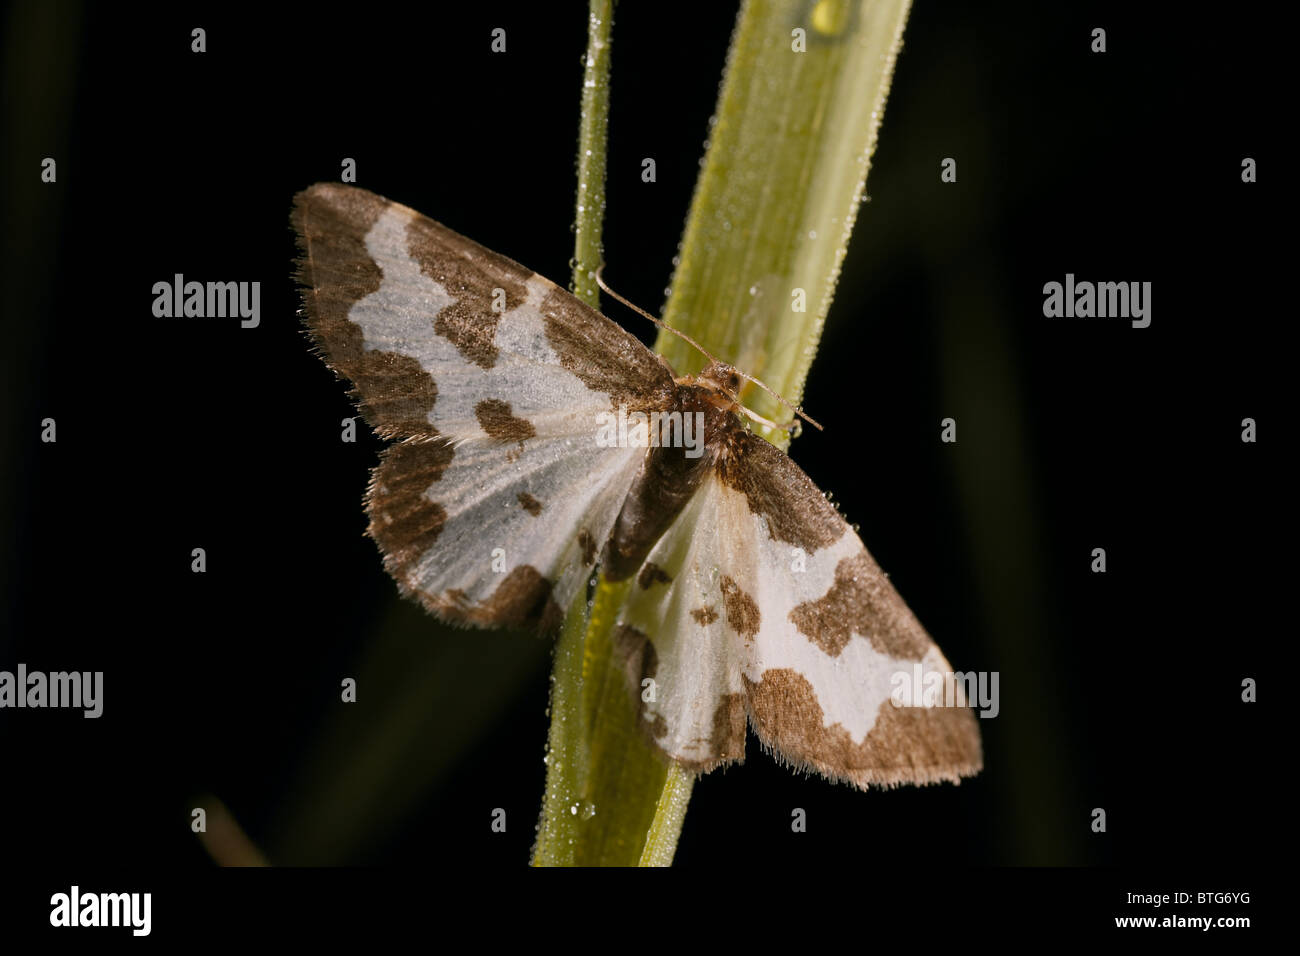 Clouded border moth, Lomaspilis marginata - Stock Image